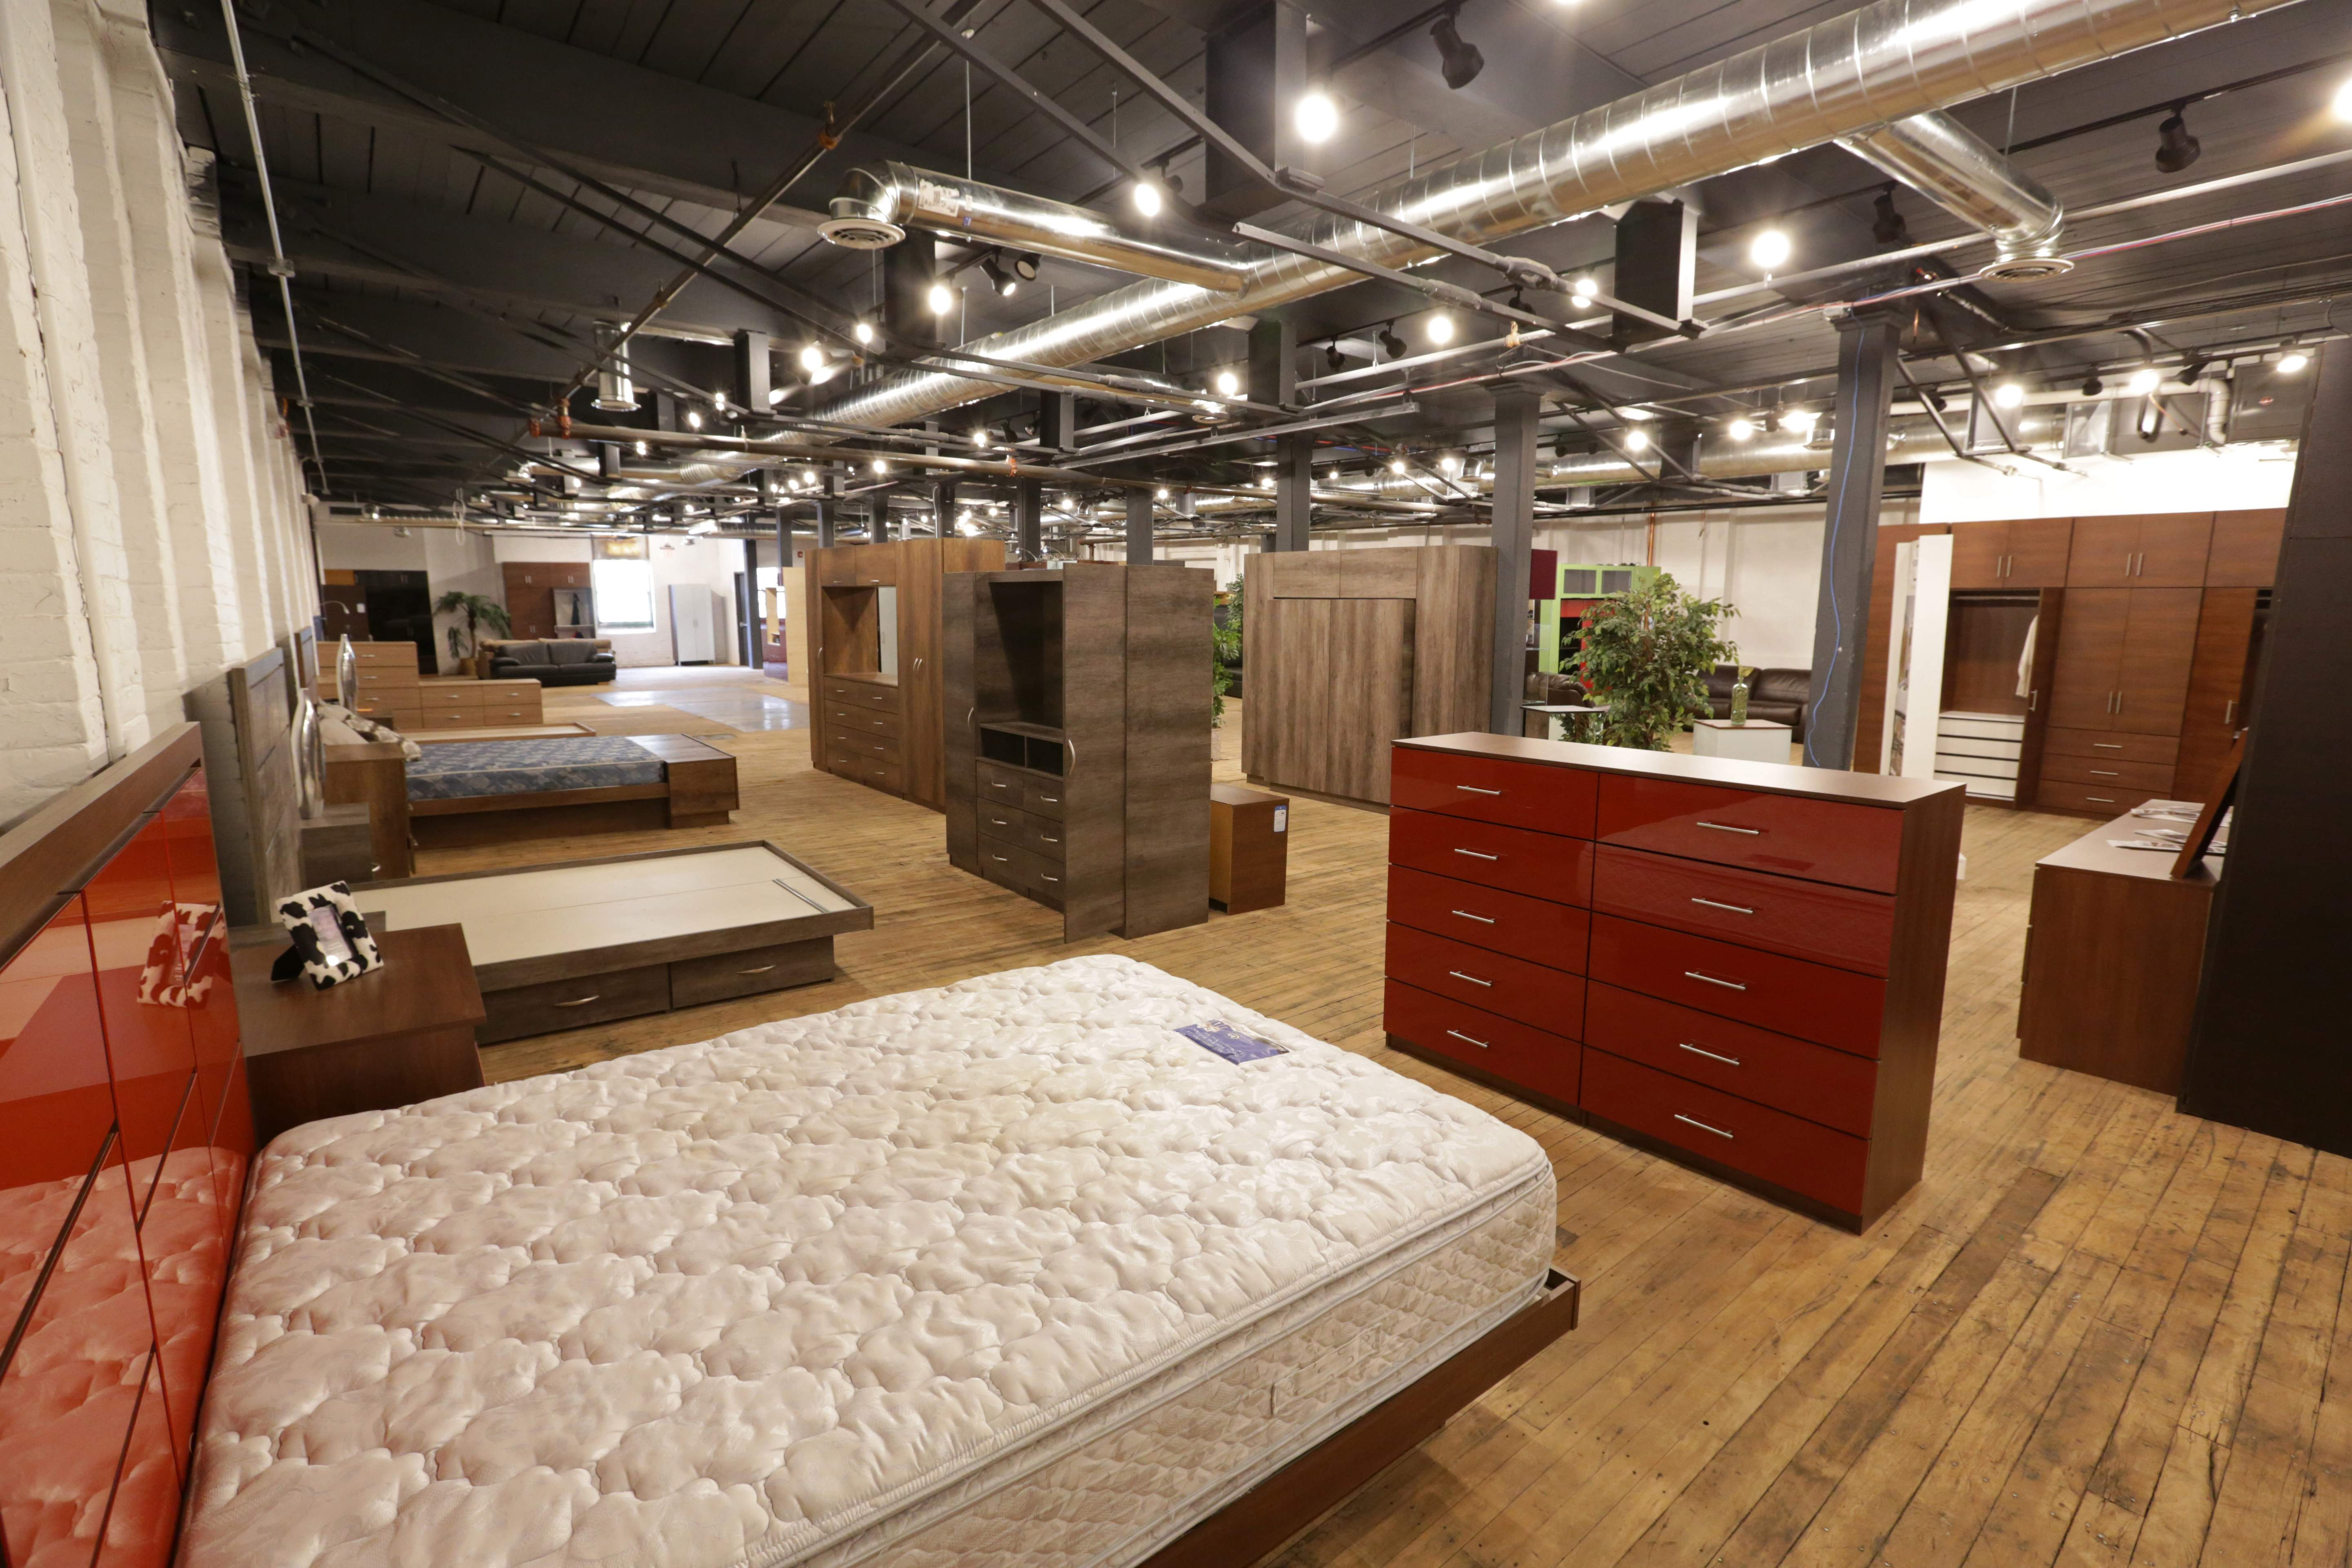 Inside the Contempo Space showroom in Passaic.